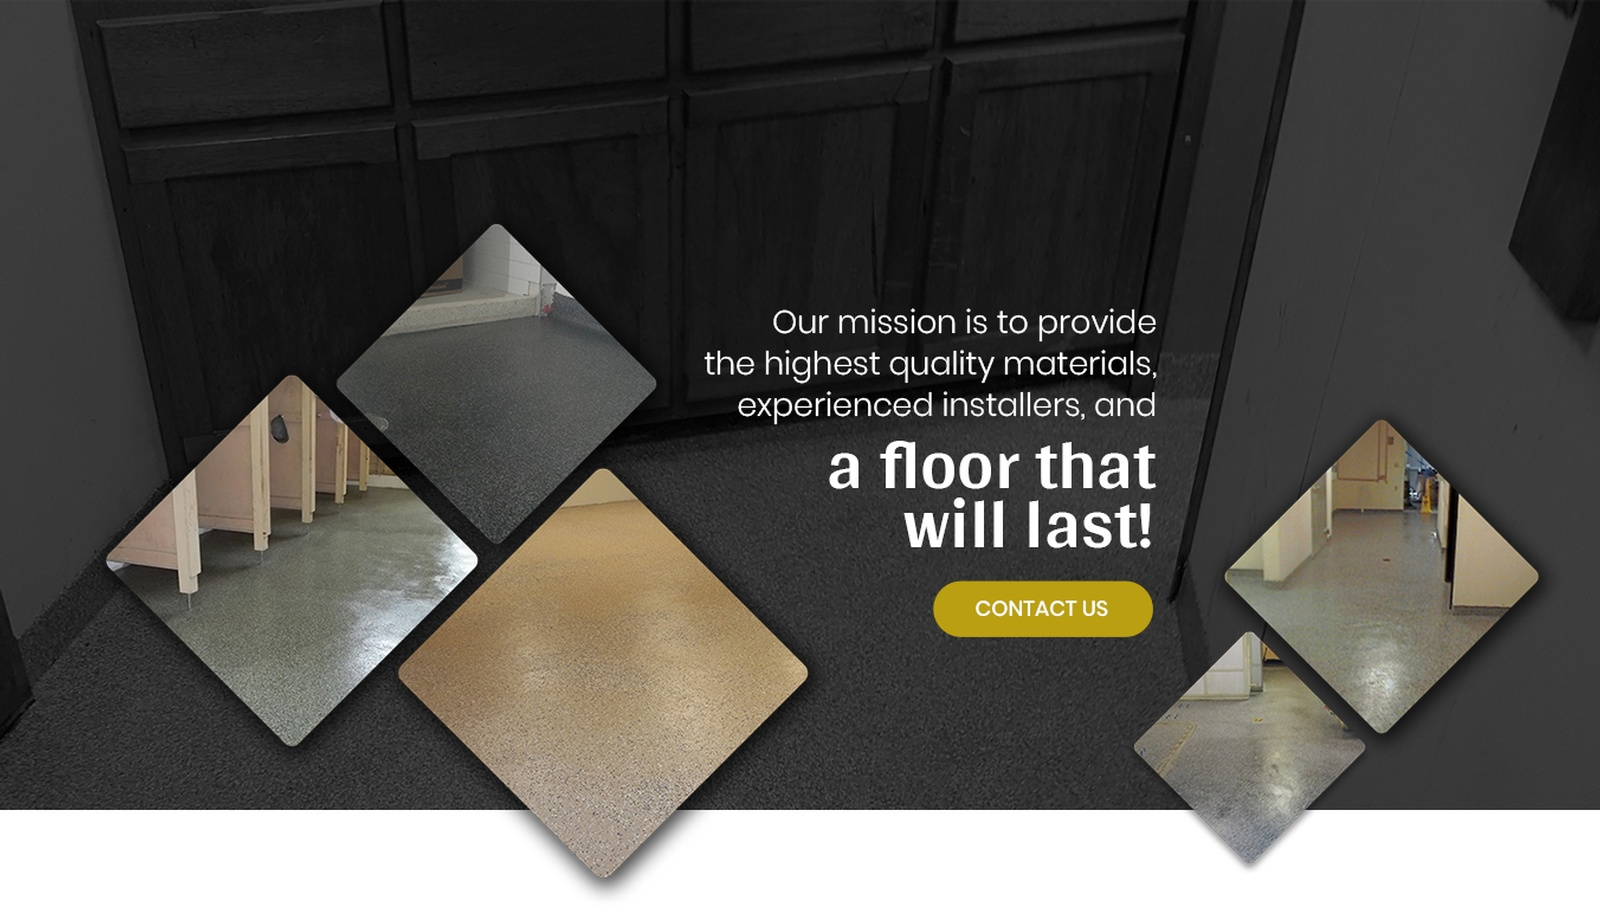 Our Mission is to Provide the Highest Quality Materials, experienced installers, and a Floor that will last.